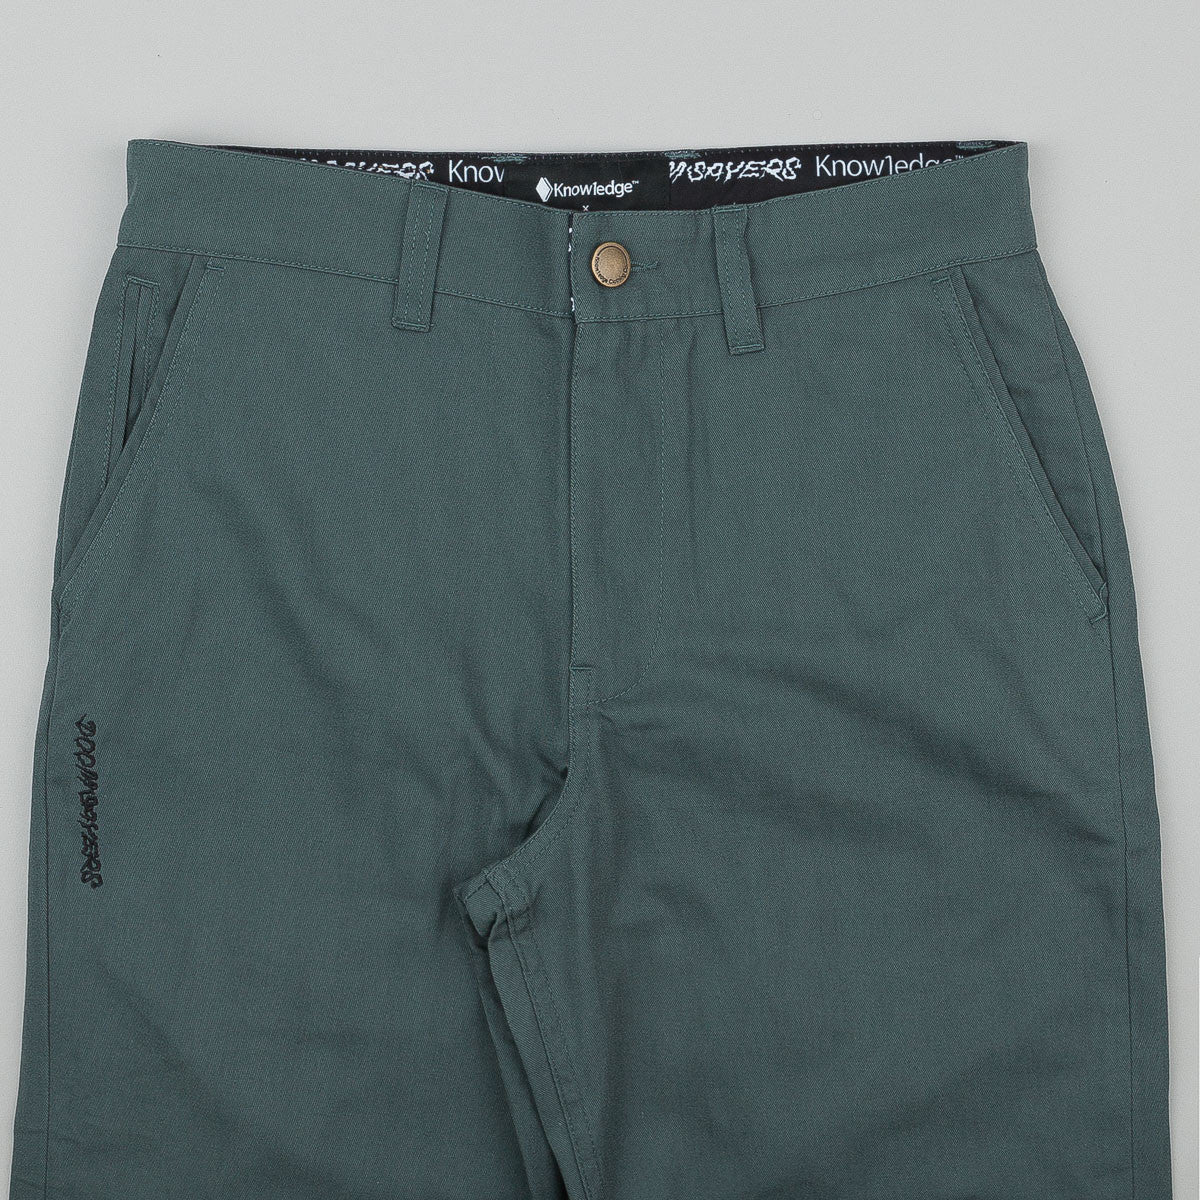 Doom Sayers X Know1edge Stranger Trousers - Mint